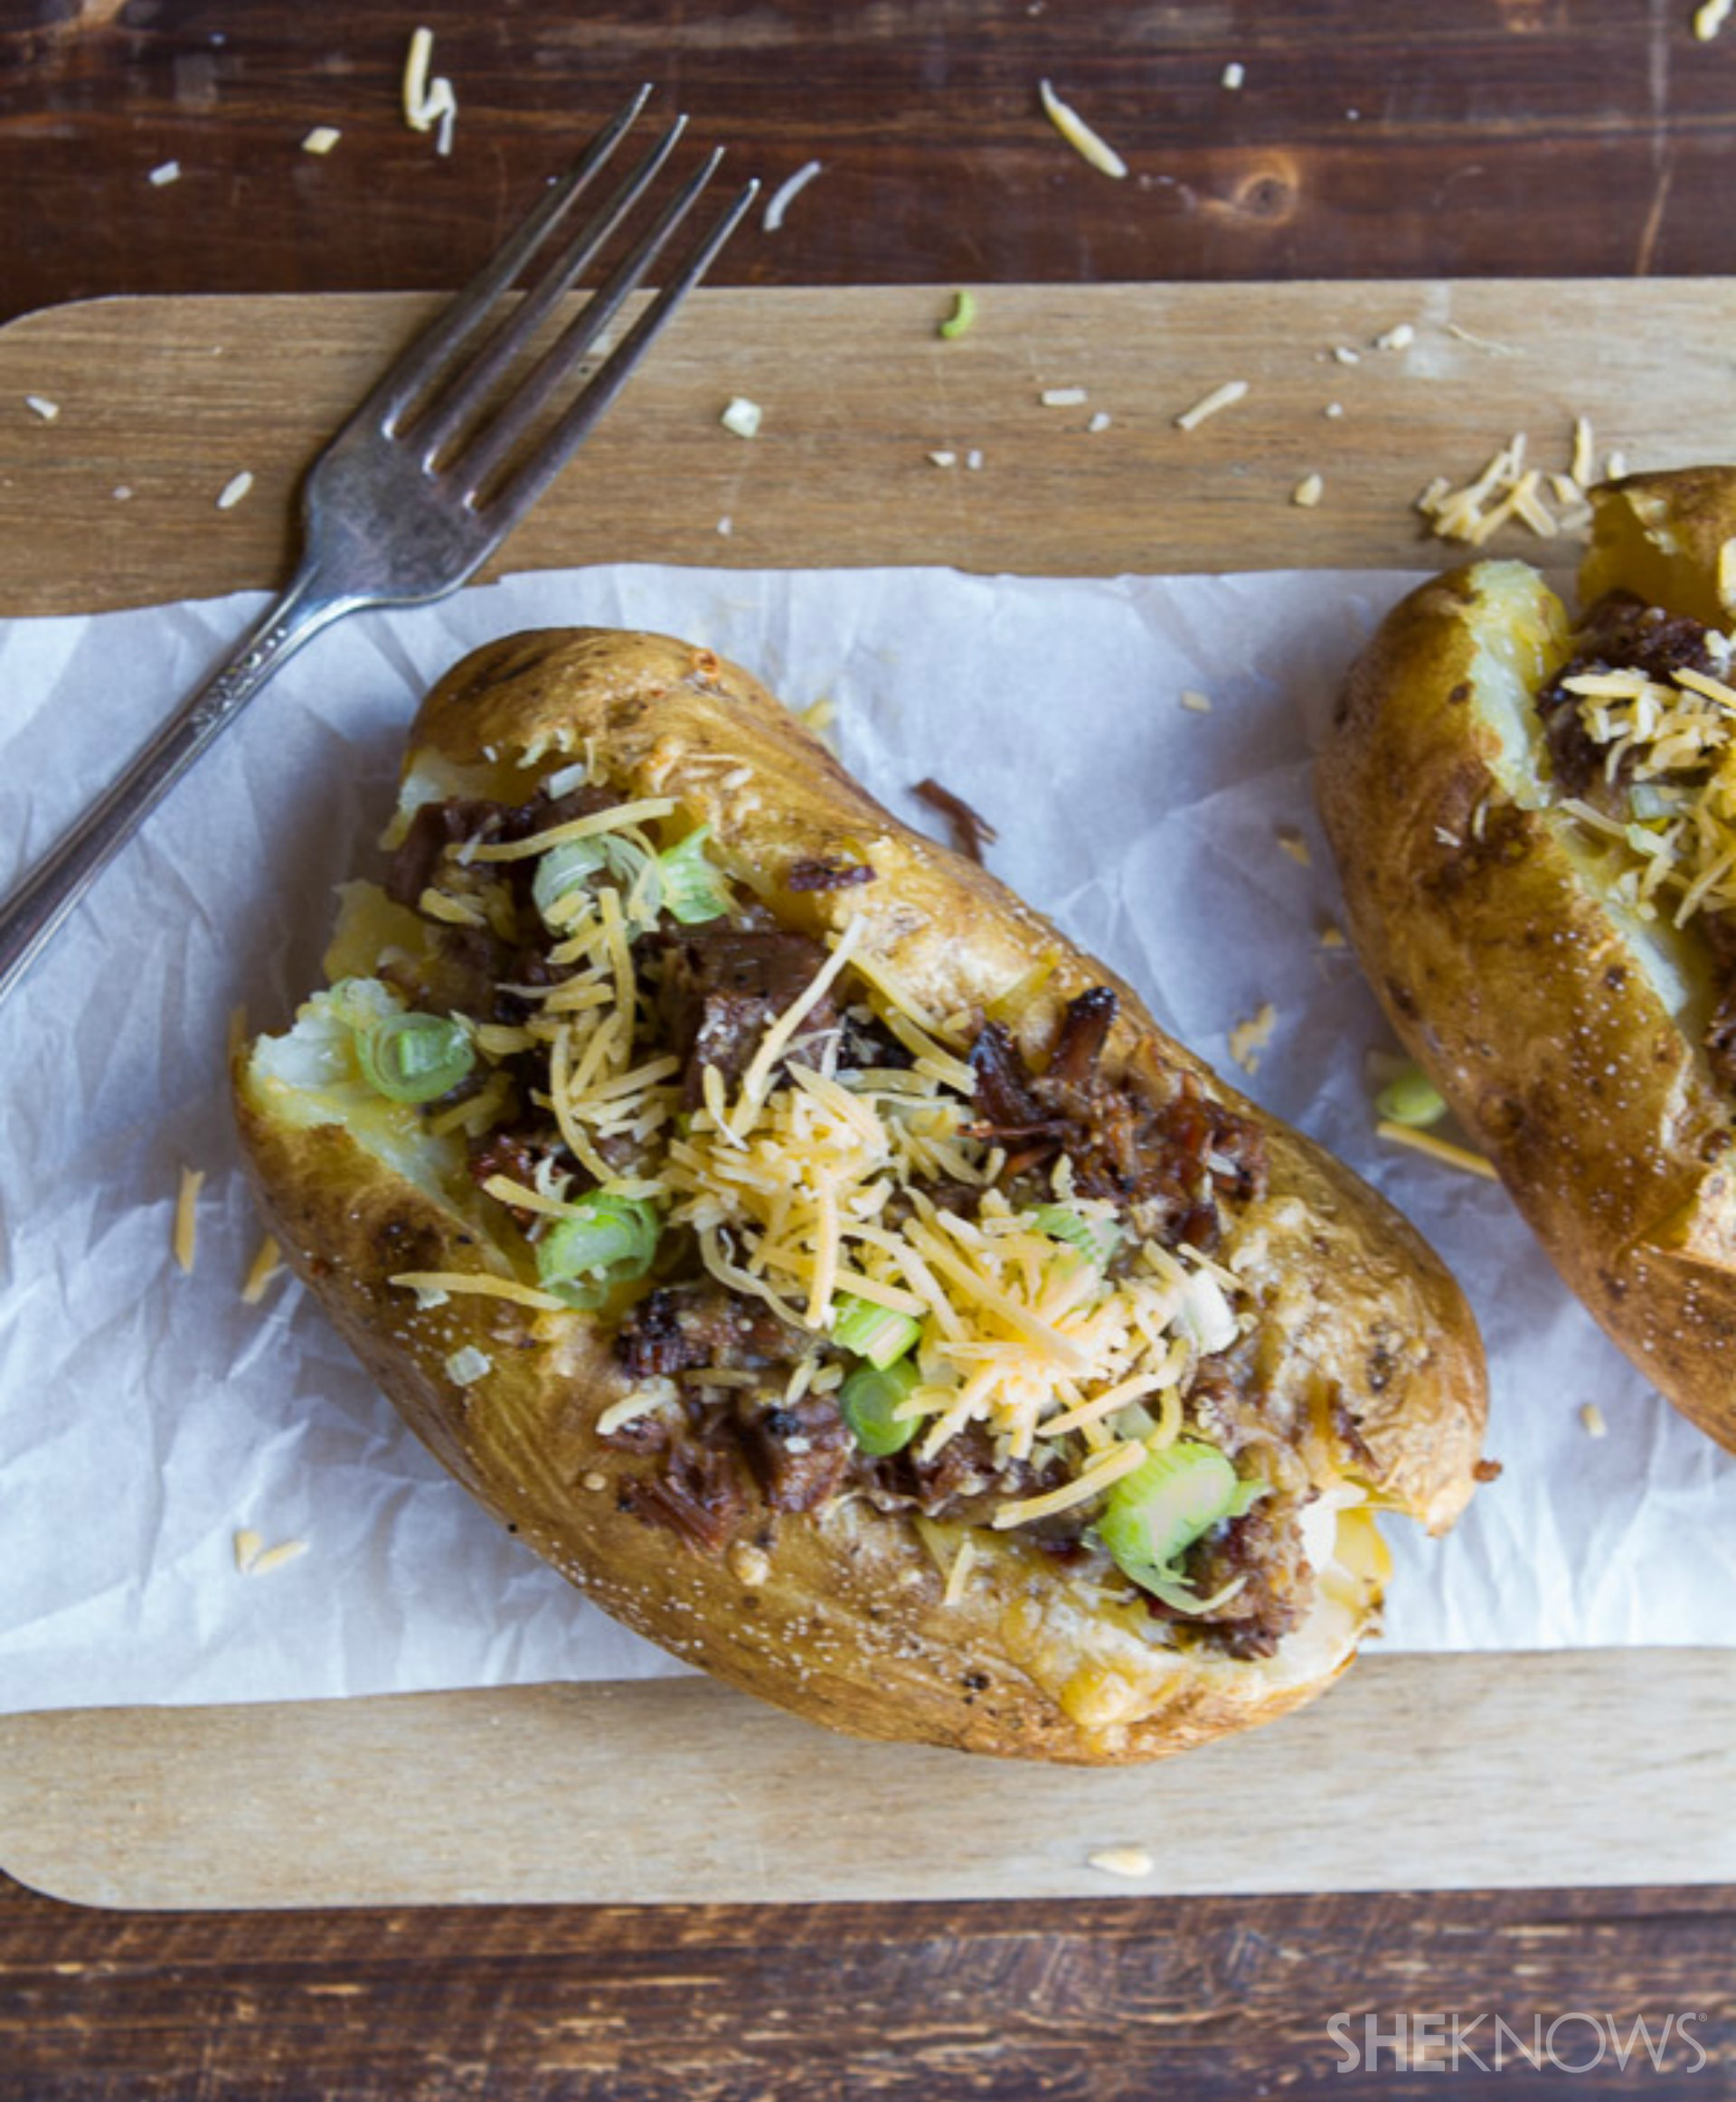 Brisket-and-cheese-stuffed jumbo potatoes. You can thank us later.